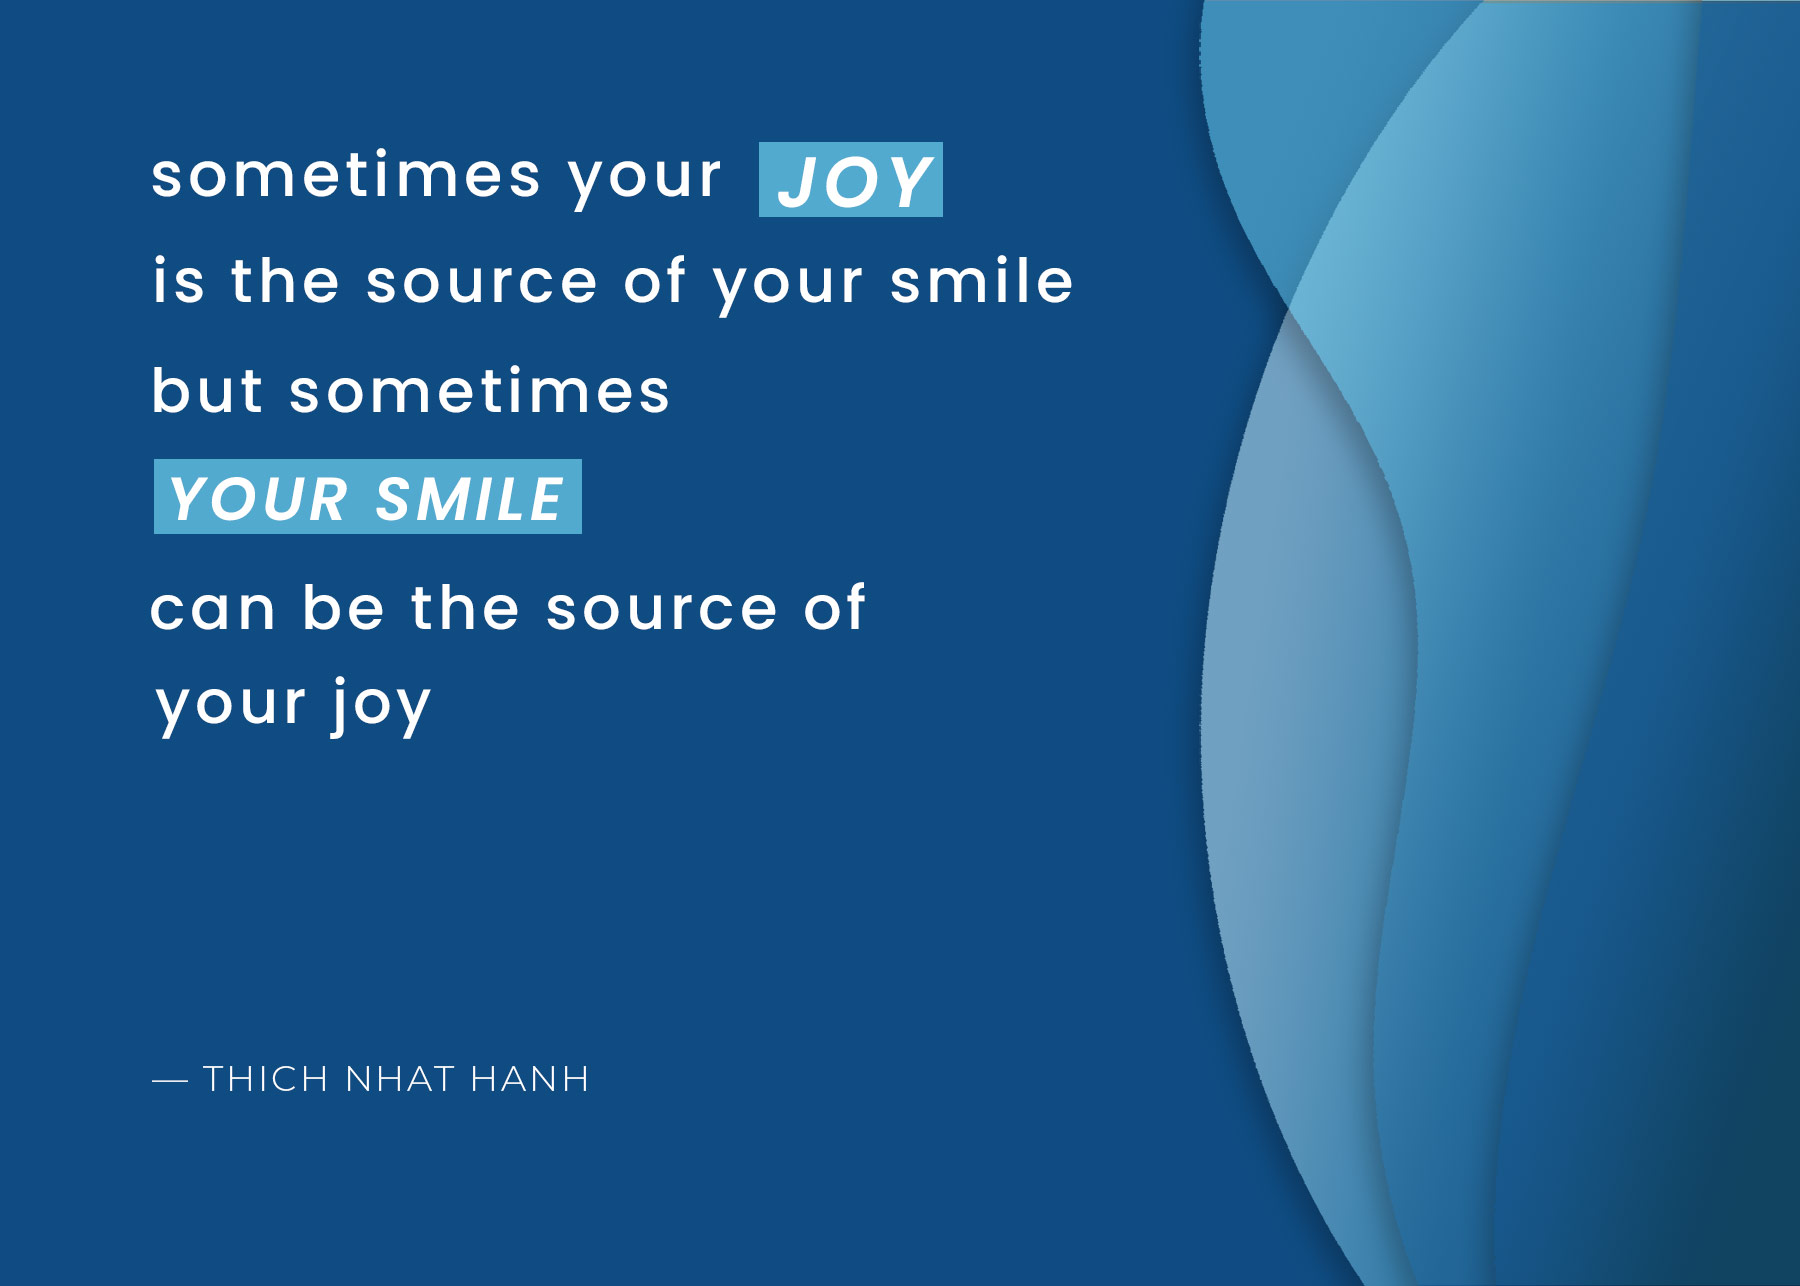 Social media post with quote sometimes your joy is the source of your smile but sometimes your smile can be the source of your joy